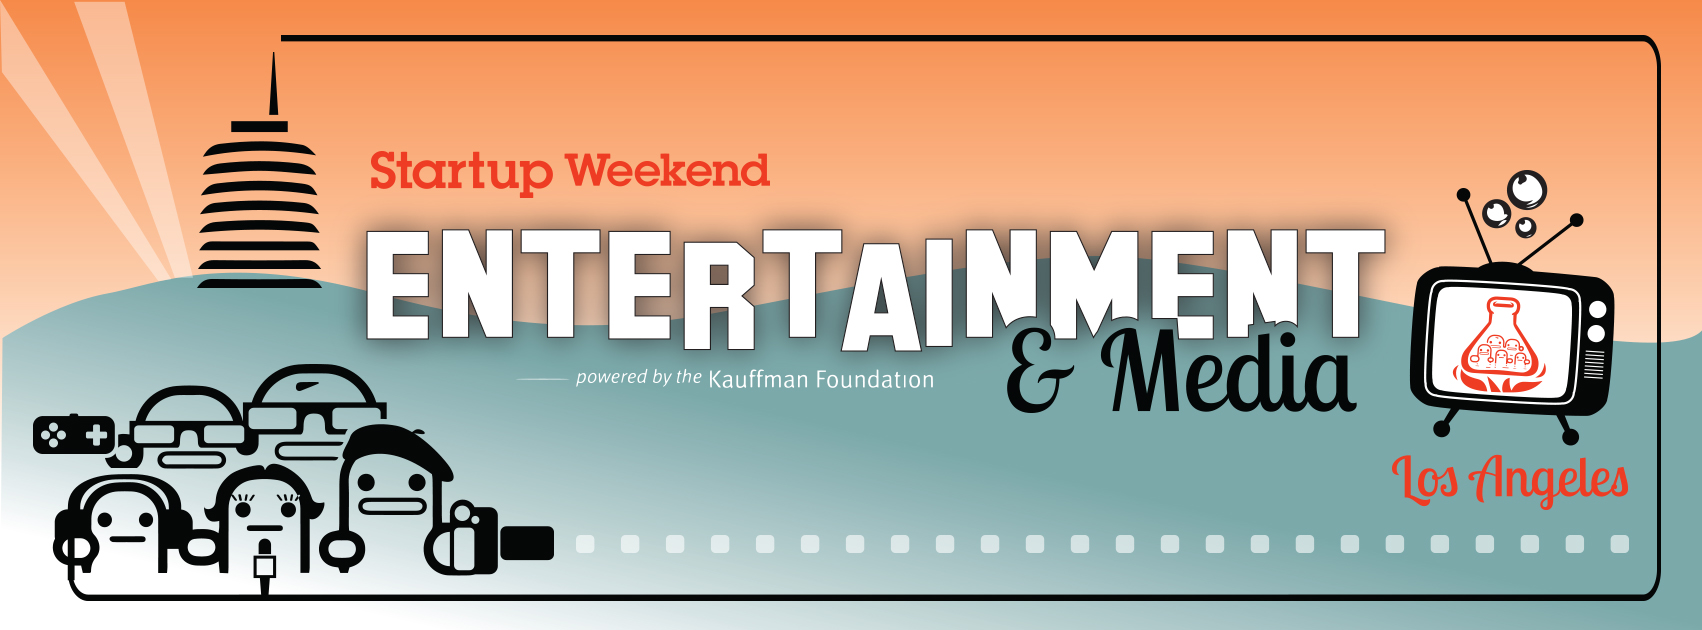 Entertainment and Media Startup Weekend 1